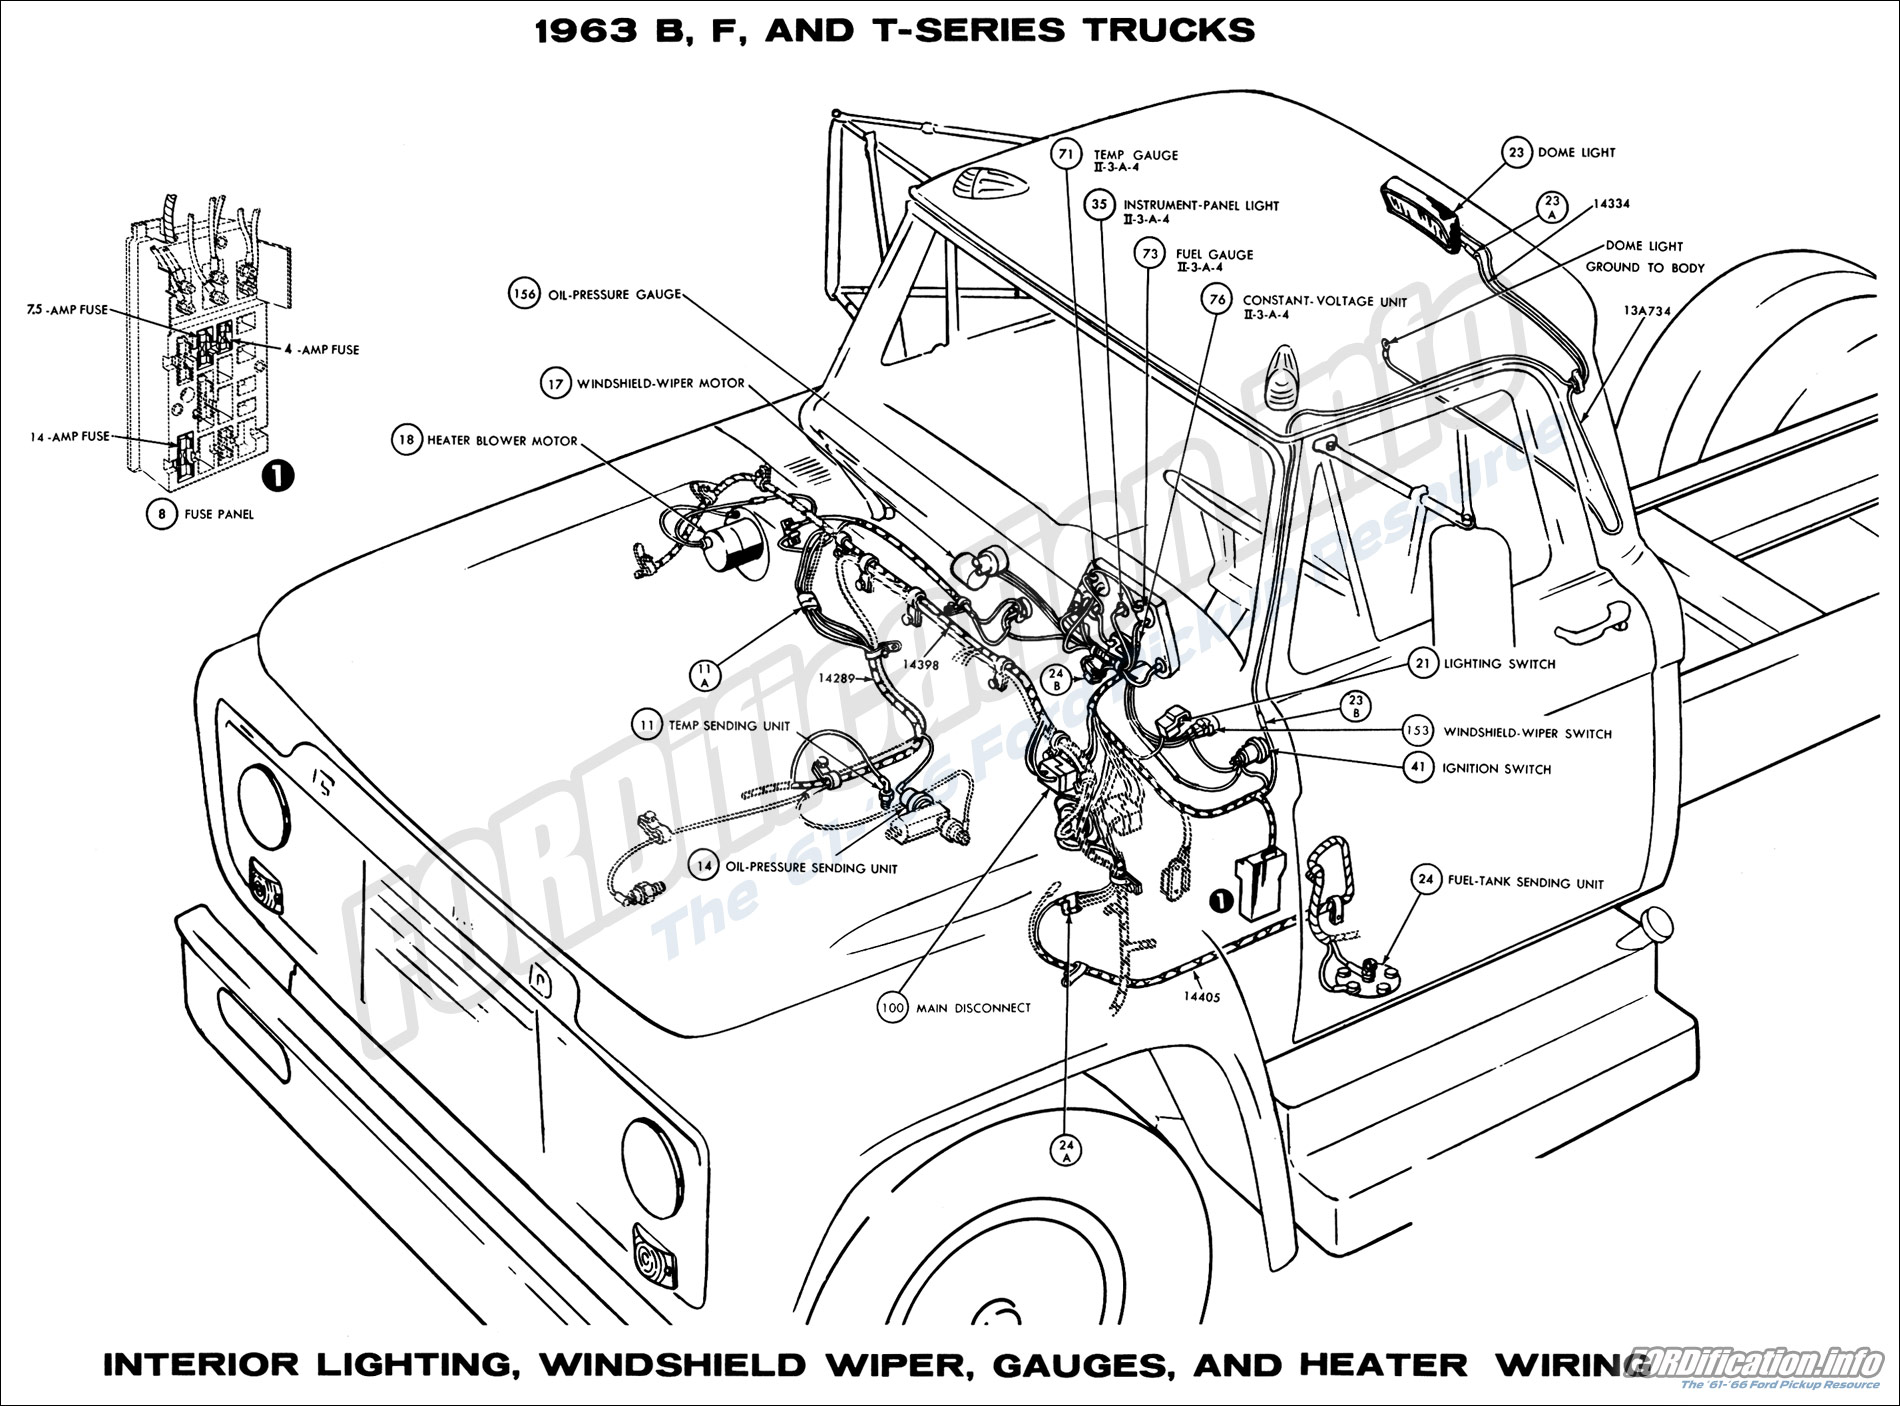 1985 Chevy K10 Ignition Wiring Diagram together with 1985 Chevy Silverado Engine as well 73 Chevy Ignition Switch Wiring Diagram Html together with Gm 3 Wire Alternator Idiot Light Hook Up 154278 in addition Dynatrol Ec 501a Wiring Diagram. on 1983 chevy truck wiring diagrams automotive